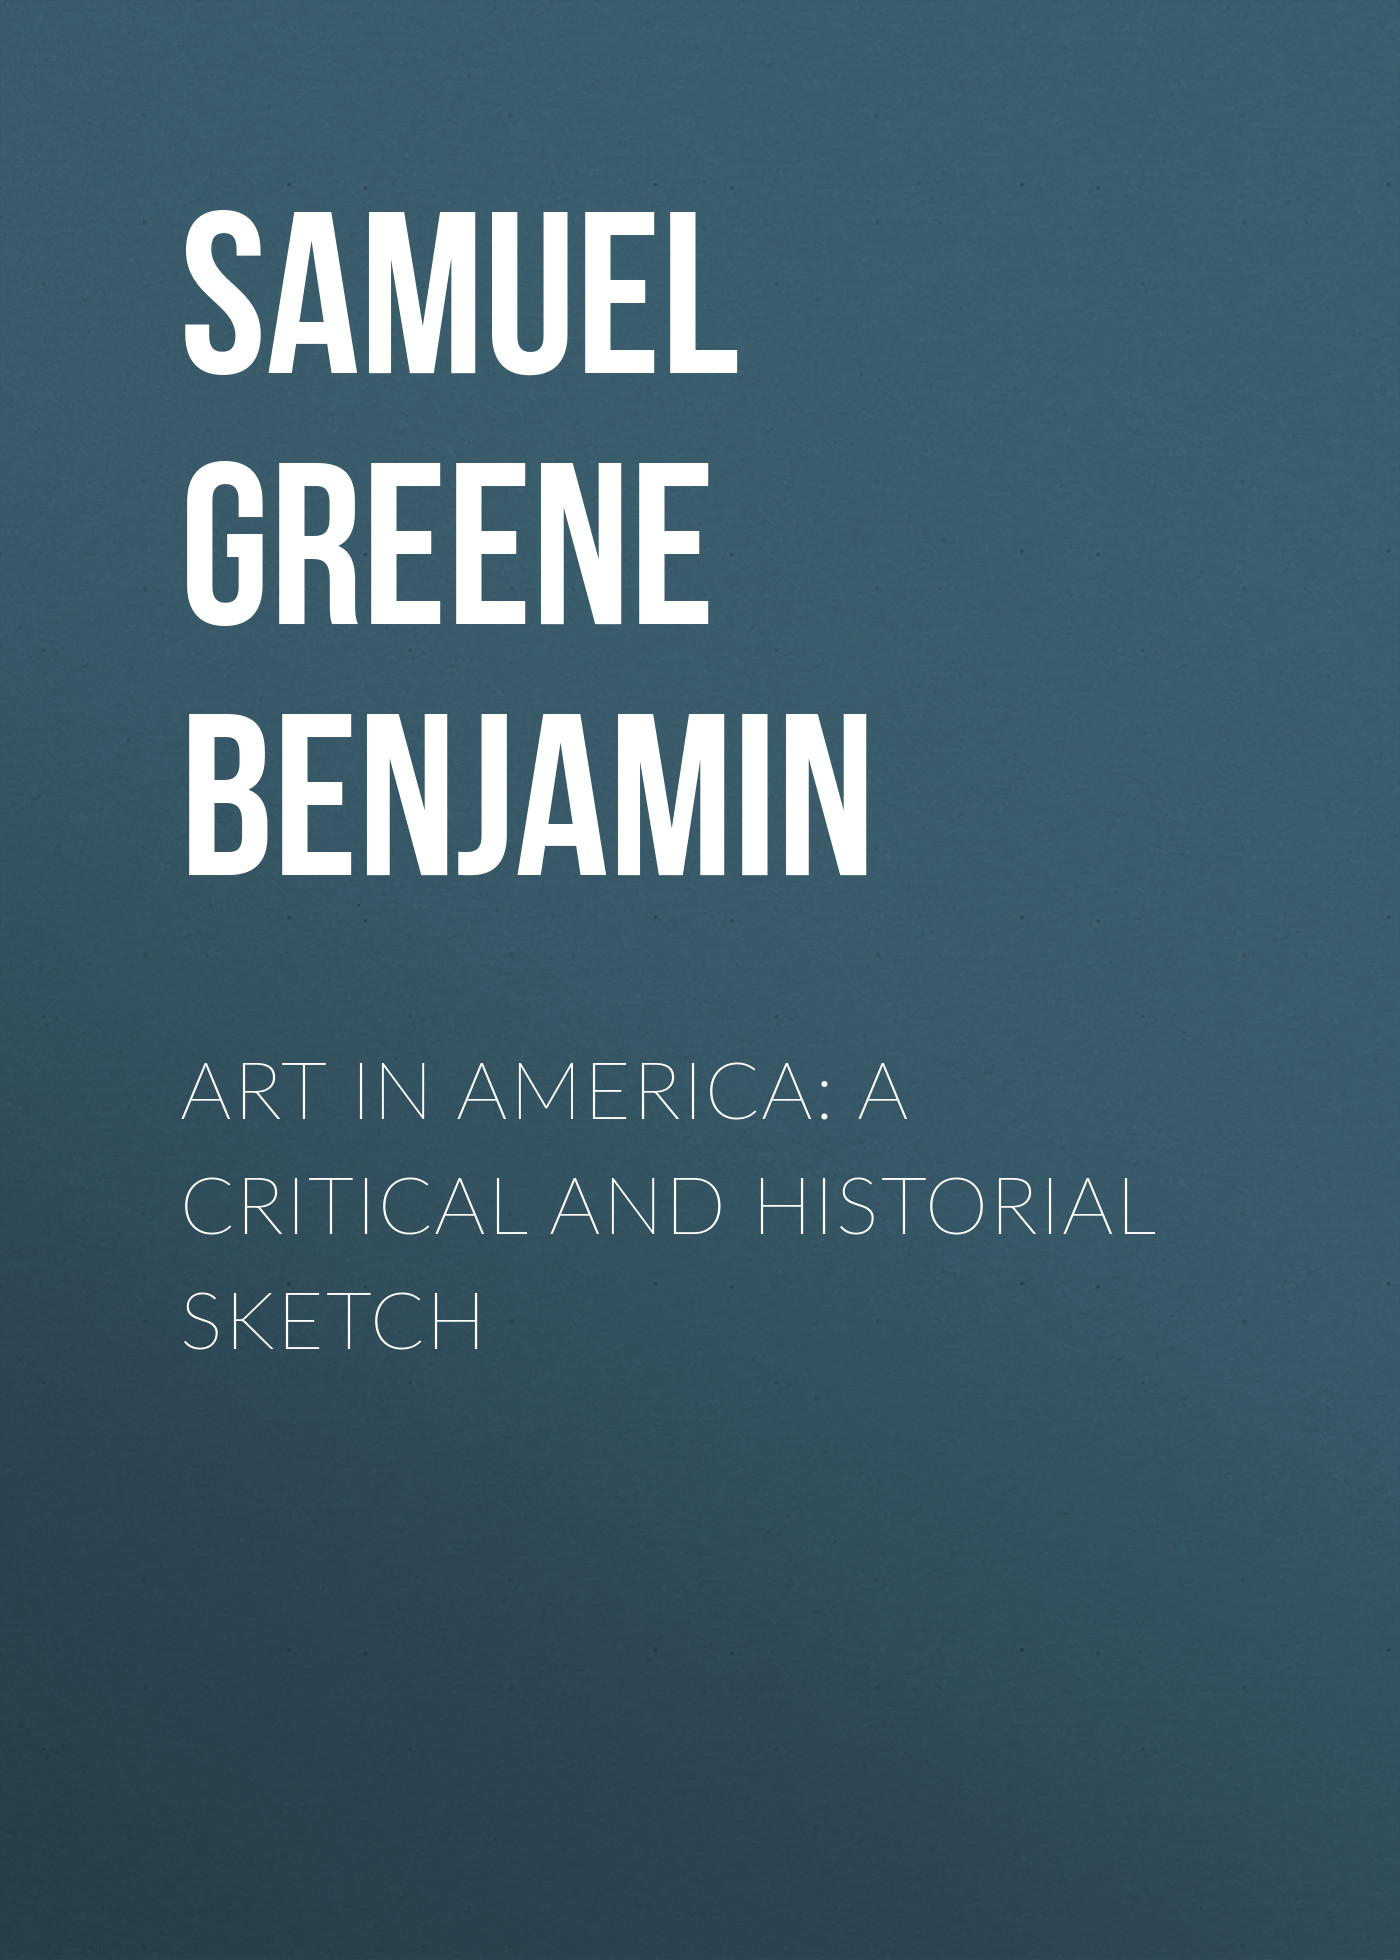 Samuel Greene Wheeler Benjamin Art in America: A Critical and Historial Sketch greene society freedom and conscience paper